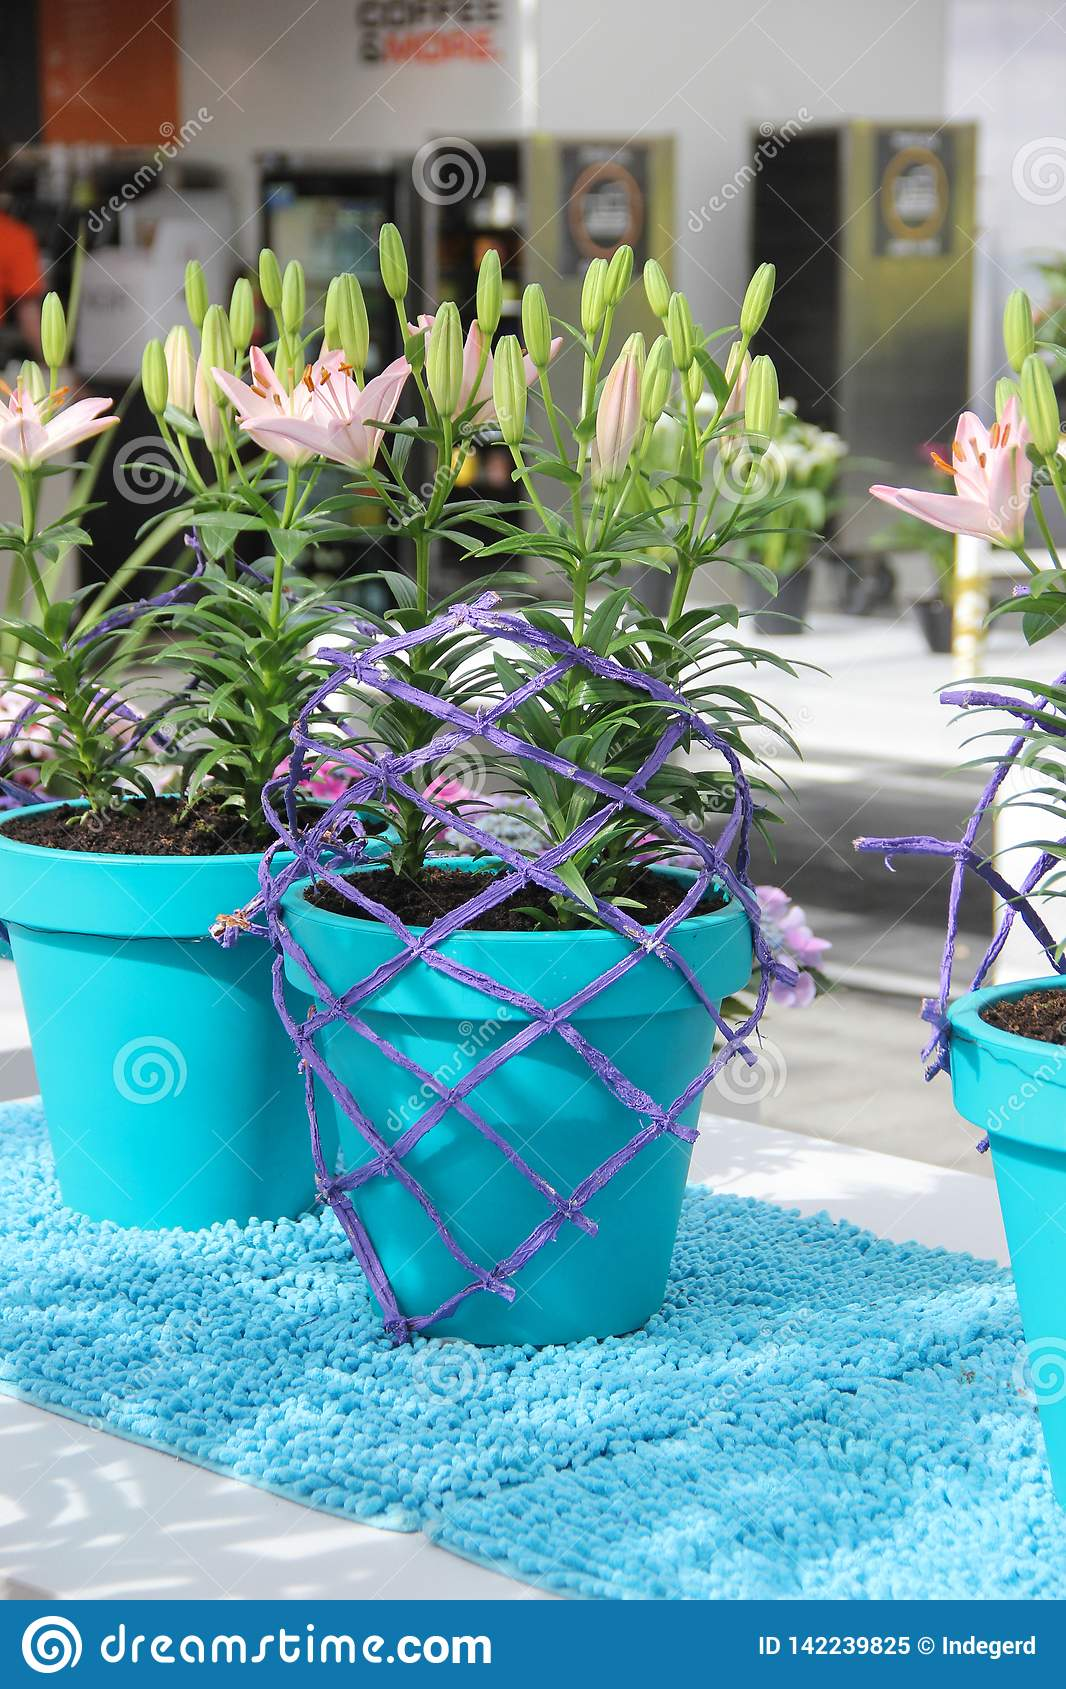 Tender beautiful pink lily flowers composition in light blue pots and violet design net in spring time in Keukenhof